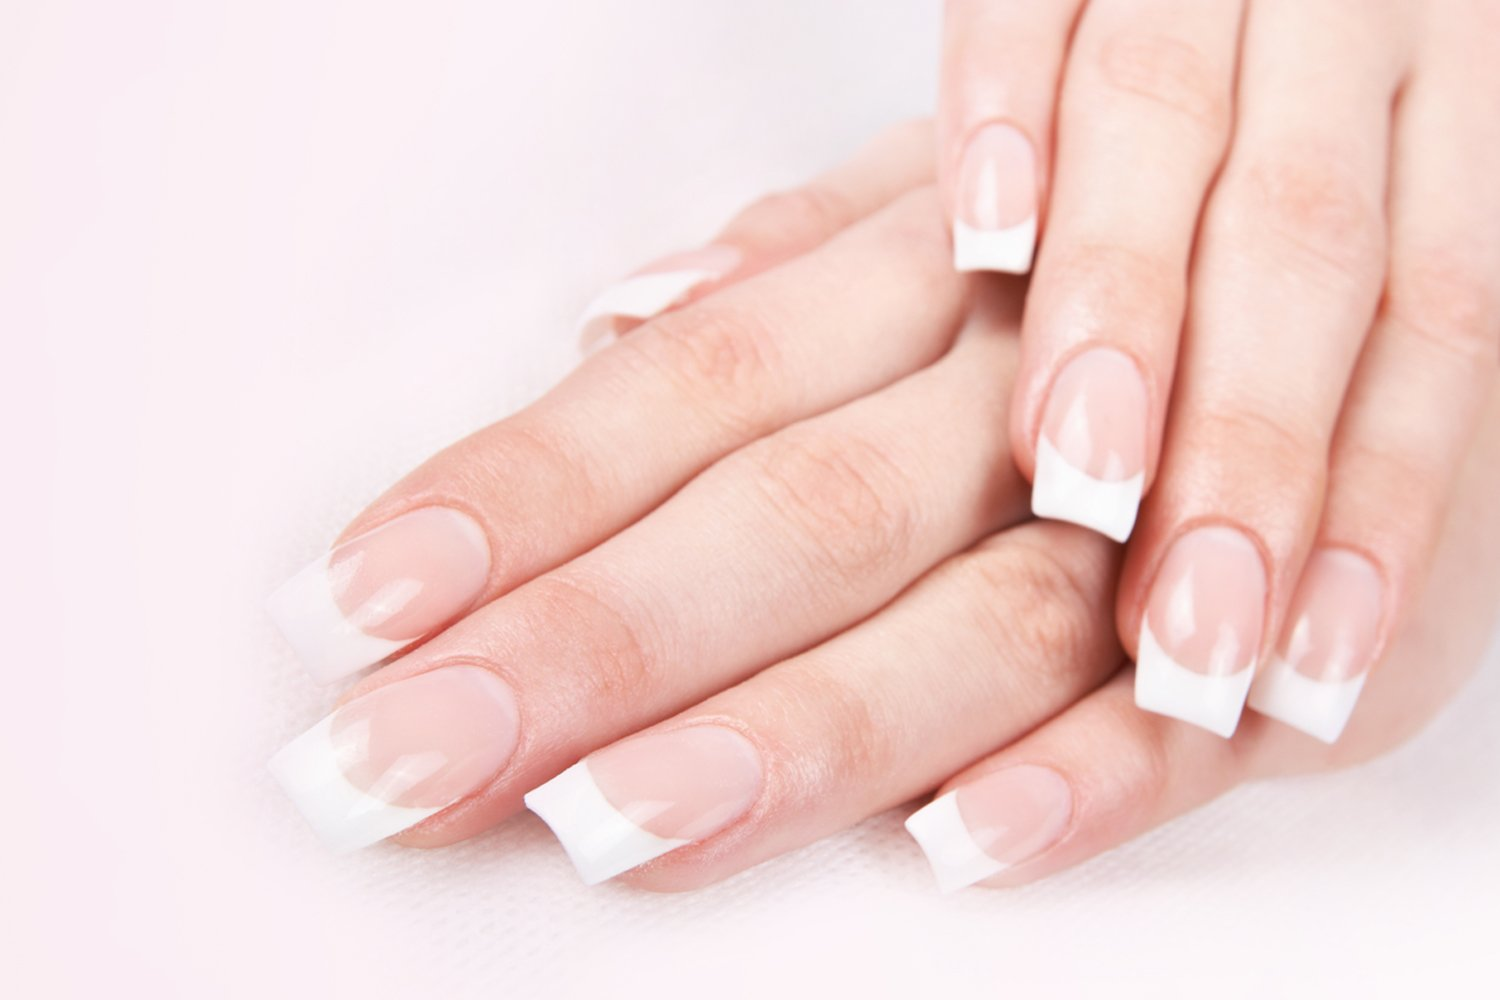 Online Acrylic Nail Extension Course | The Beauty Academy